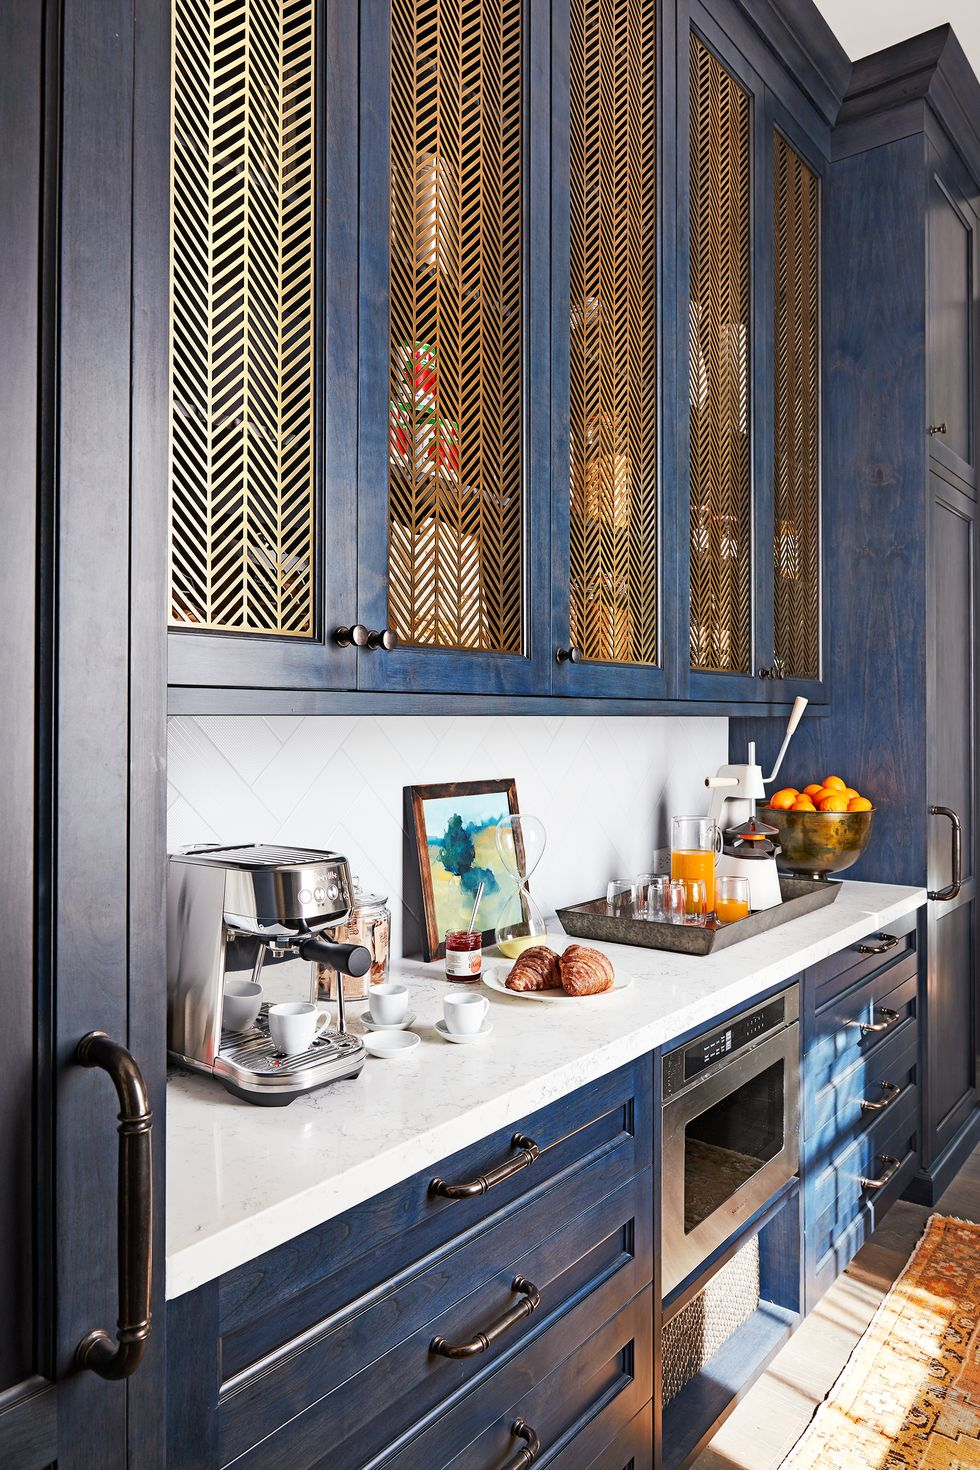 Cabinets With Metal Grate In 2020 Kitchen Cabinet Styles Kitchen Remodel Kitchen Cabinet Trends